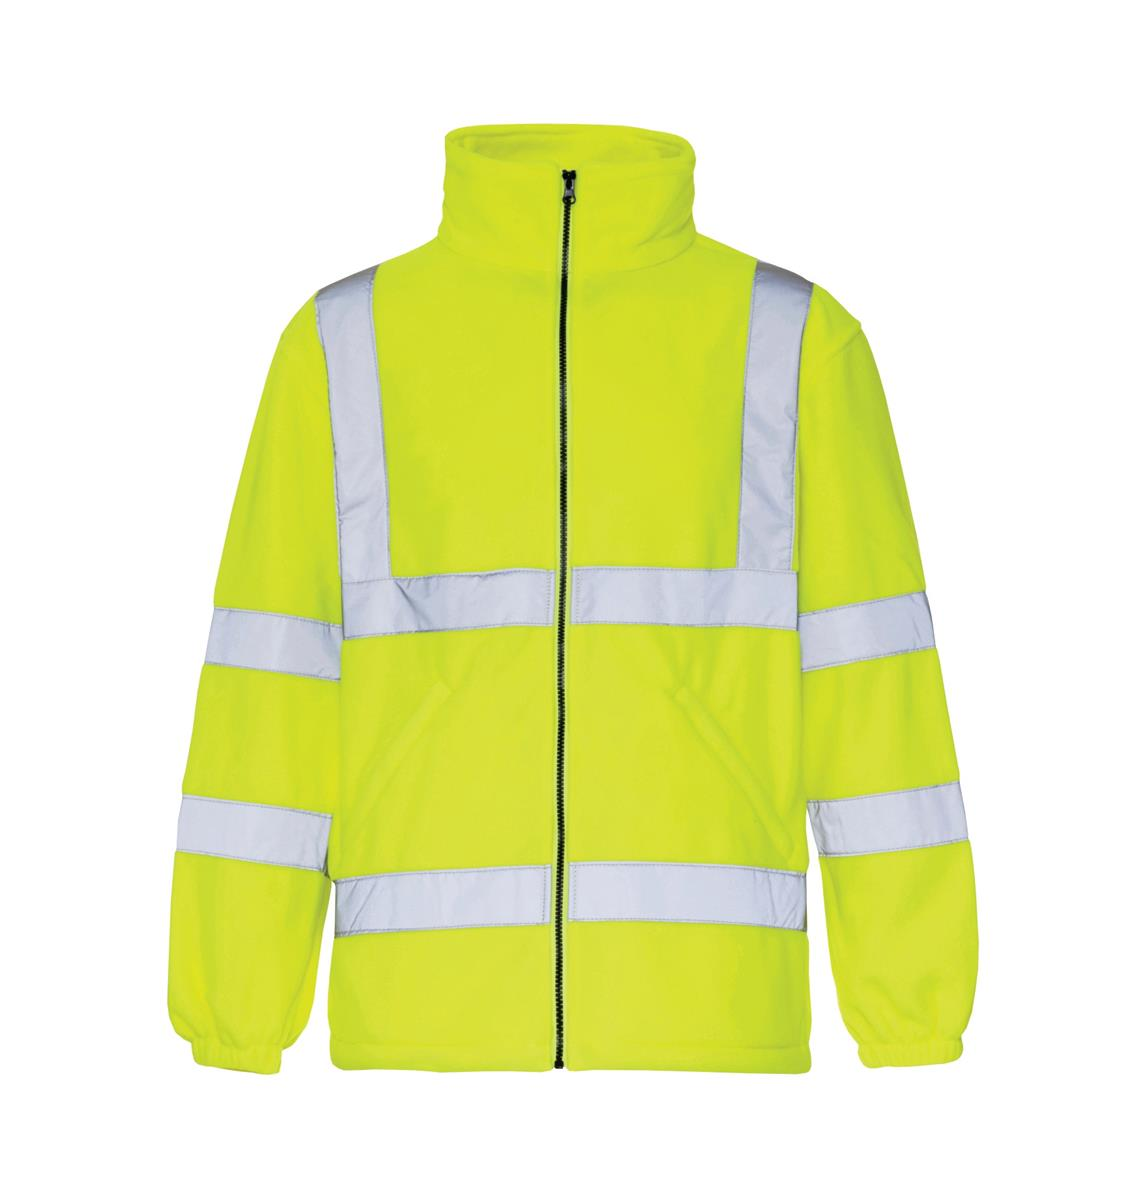 ST High Vis Micro Fleece Jacket Poly with Zip Fastening Small Yellow Ref 38041 Approx 3 Day Leadtime